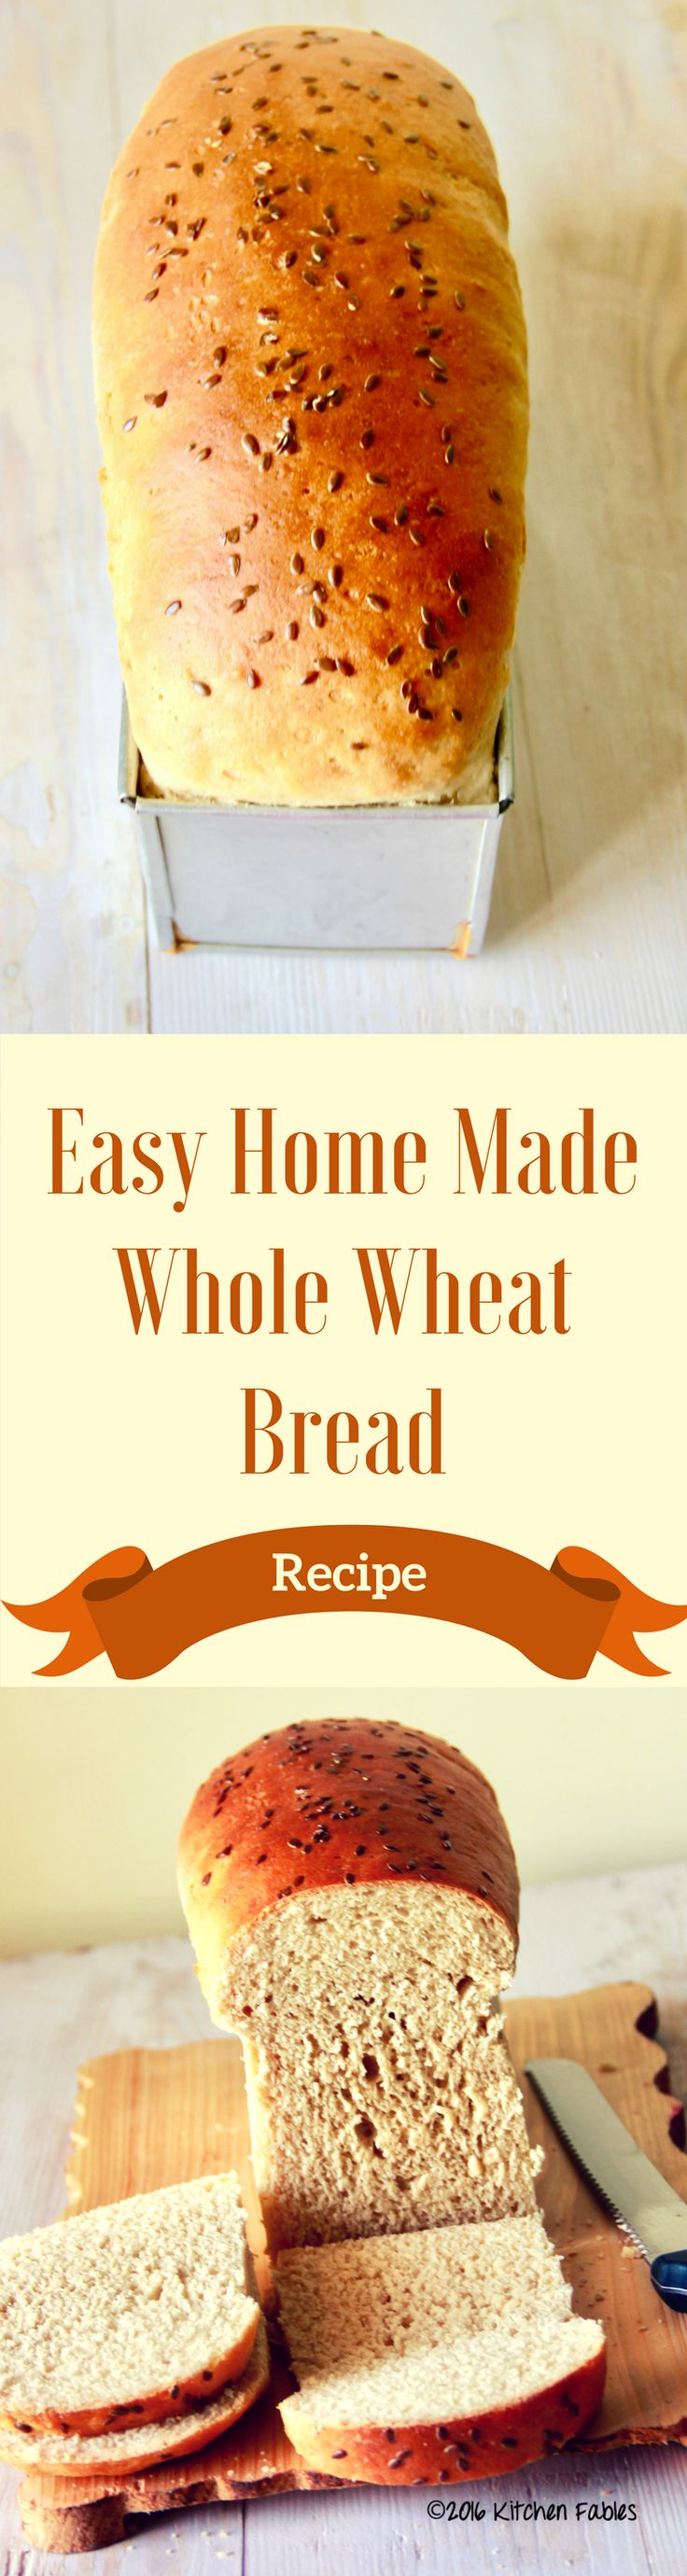 Easy Whole Wheat Bread A recipe for easy whole wheat bread made at home. Once you start baking bread at home, you will not want to buy the bread from store.